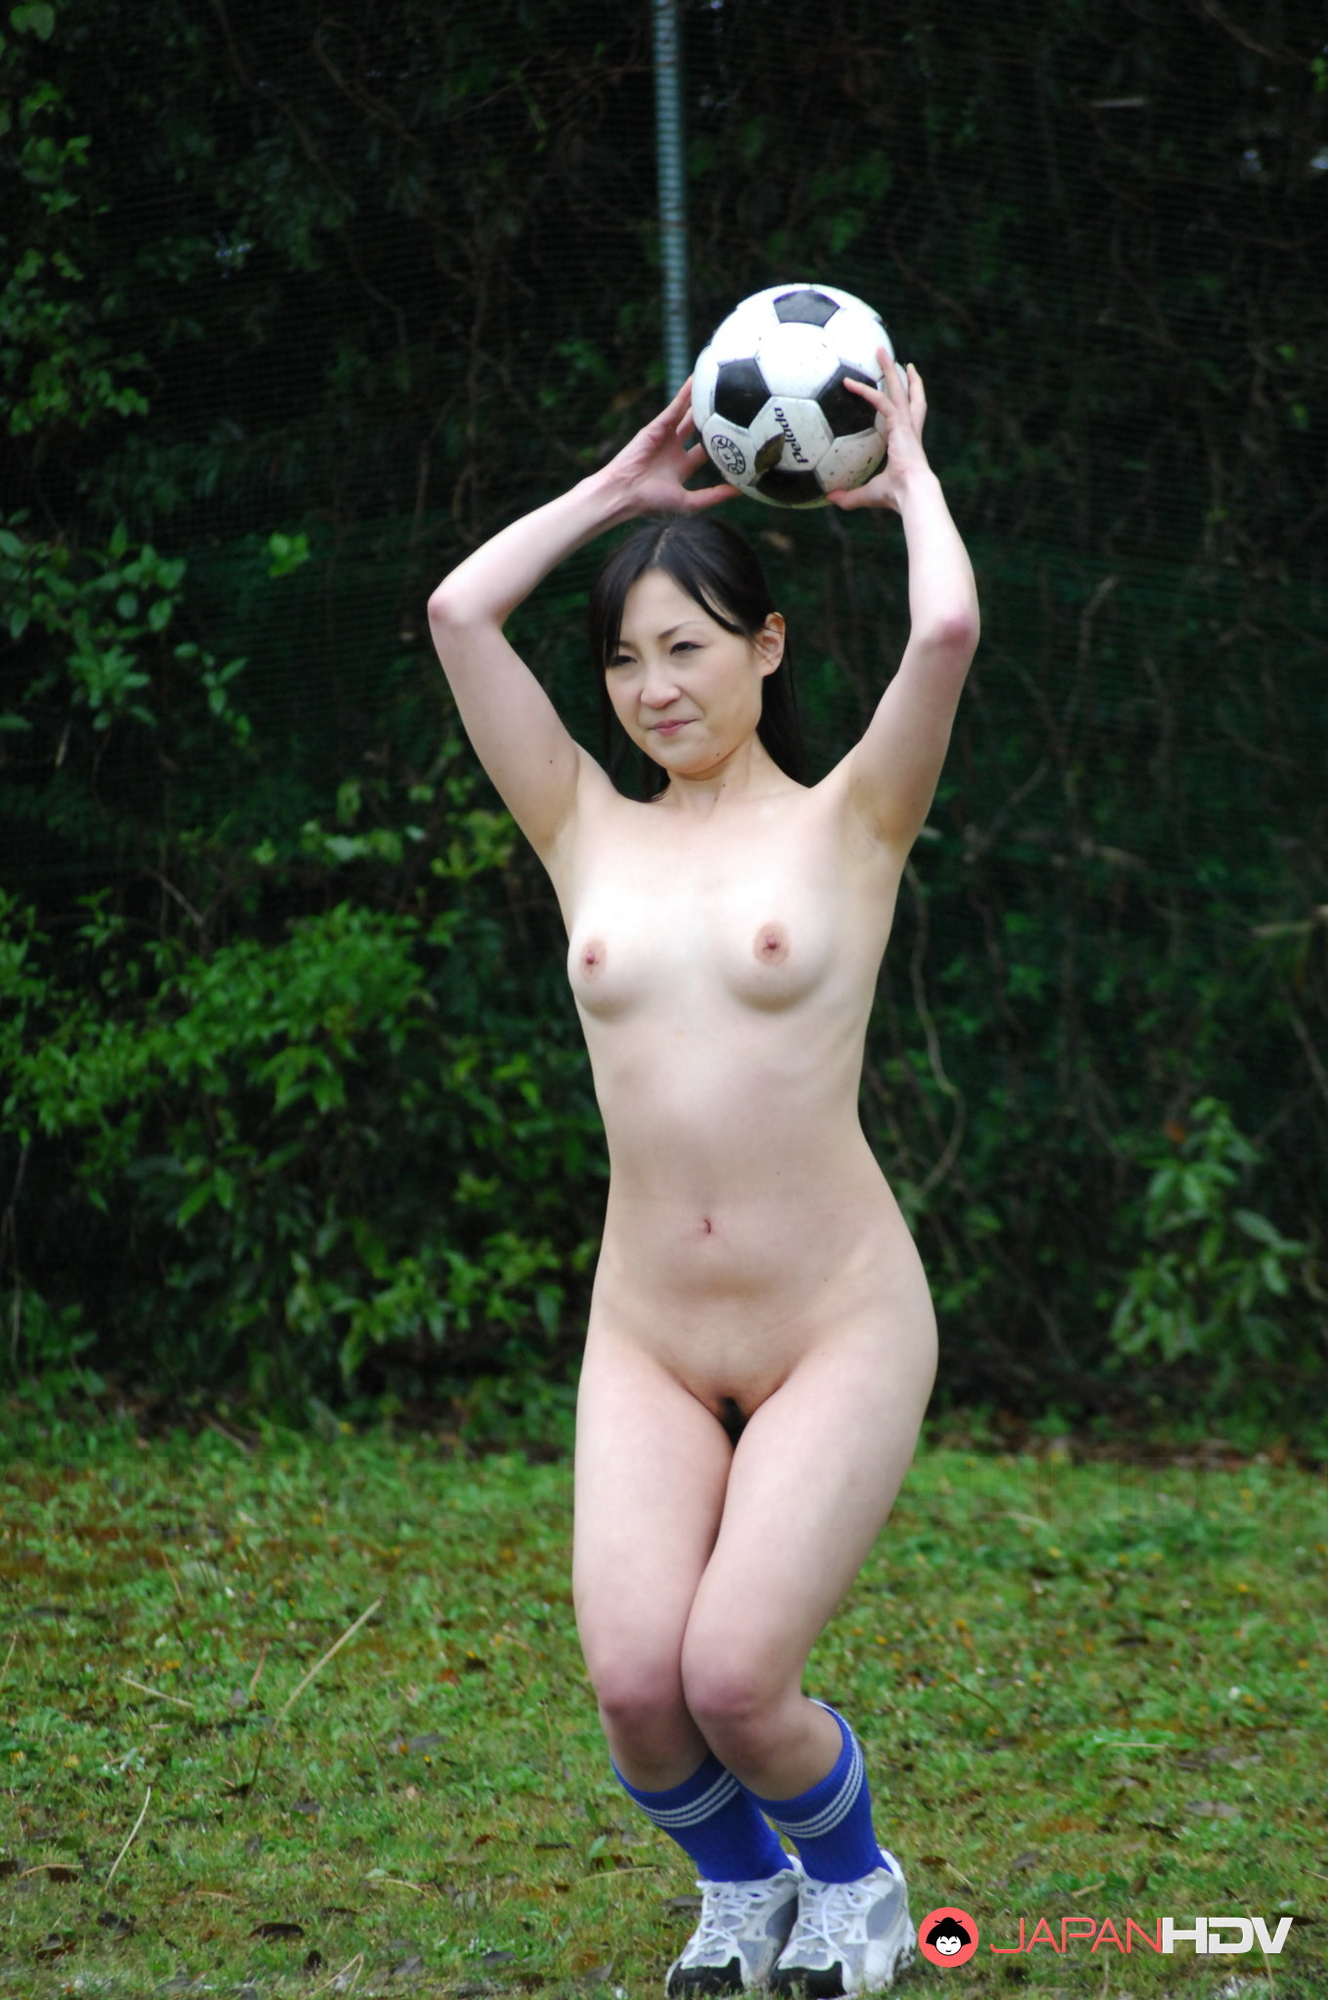 pictures of naked girls playing sports